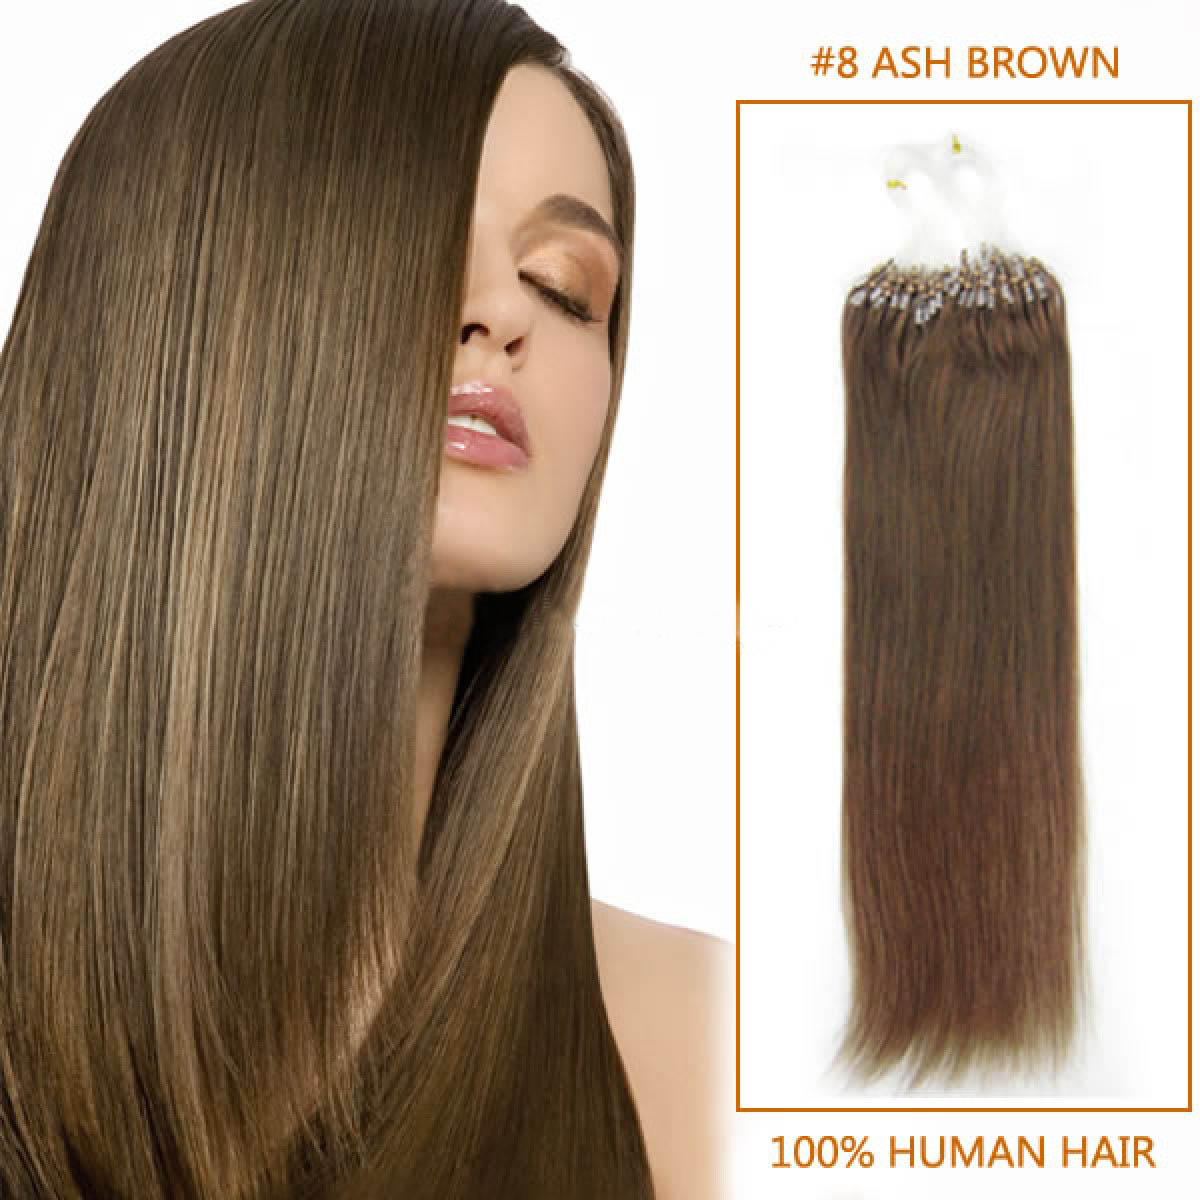 34 Inch 8 Ash Brown Micro Loop Human Hair Extensions 100s 130g